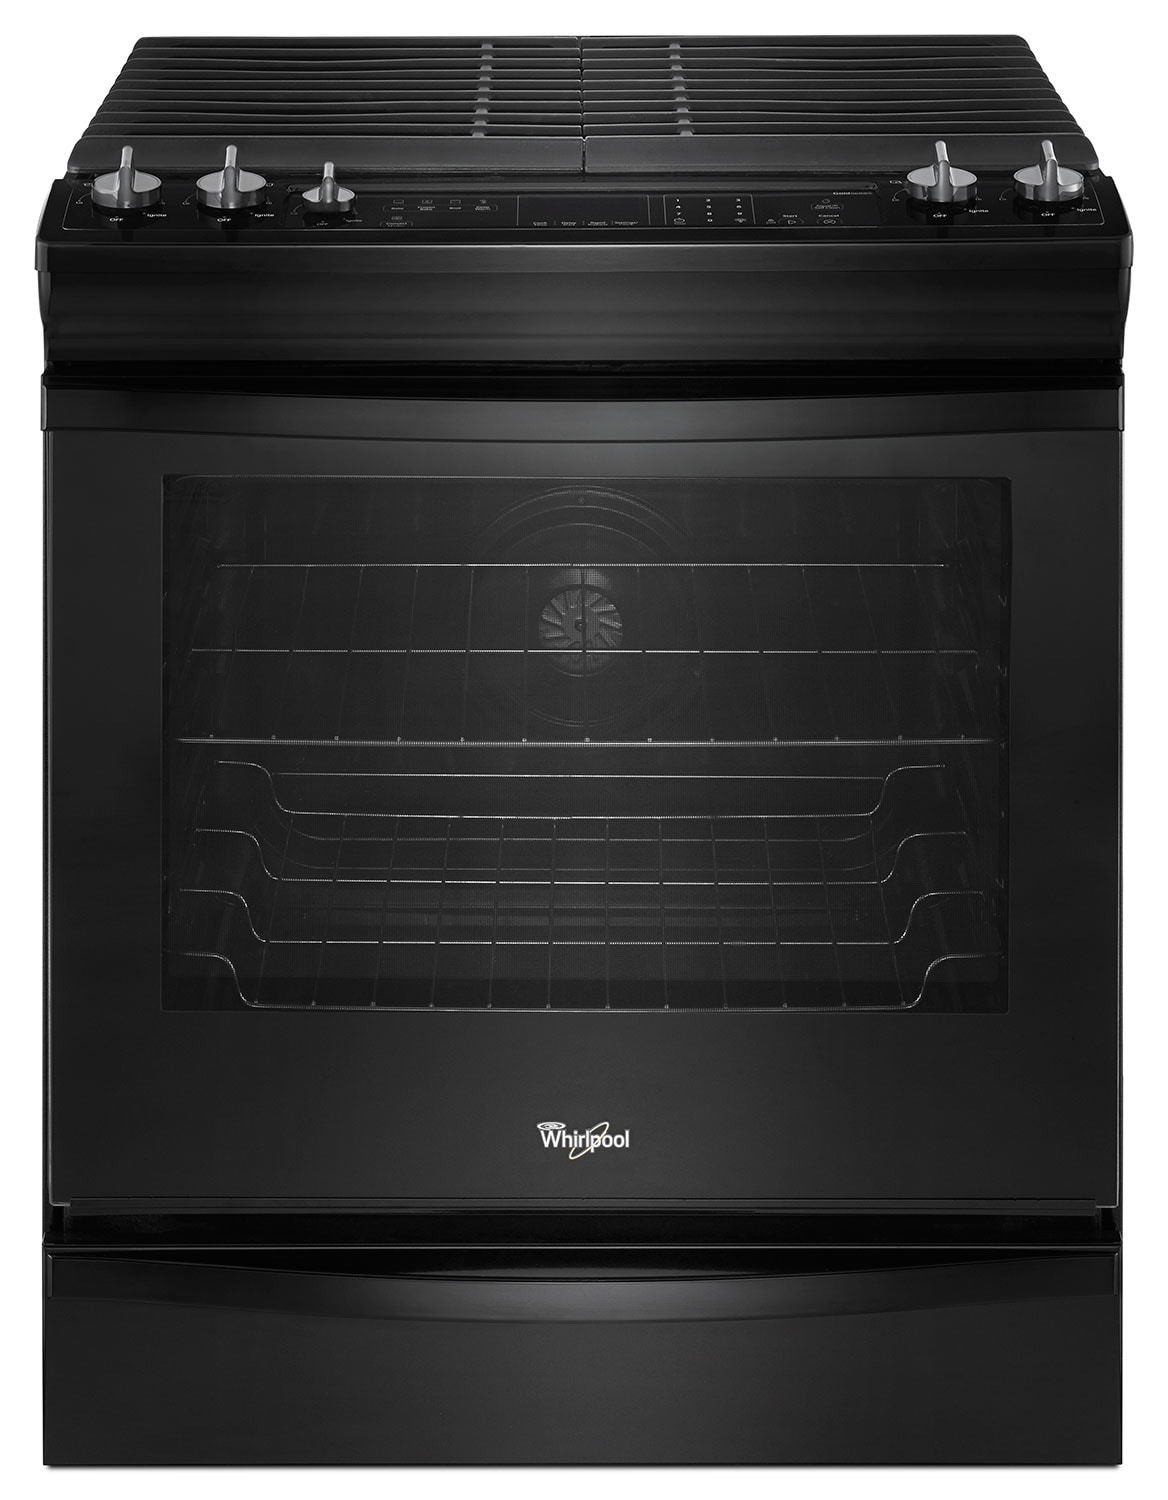 Whirlpool Black Slide-In Gas Convection Range (5.8 Cu. Ft.) - WEG730H0DB